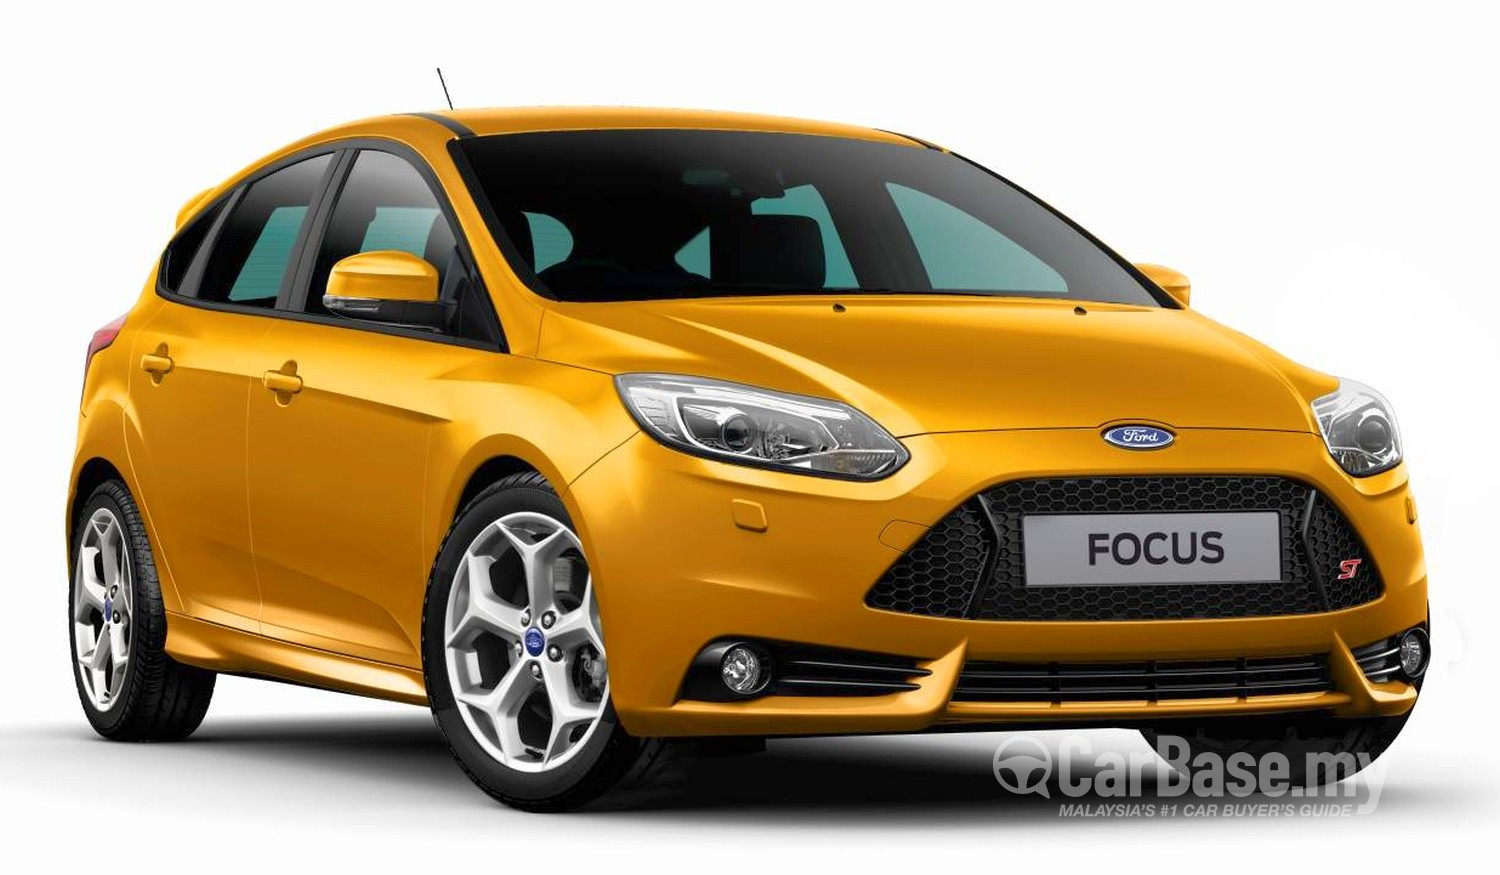 Ford Focus St Mk3 C346 2012 Exterior Image 6357 In Malaysia Reviews Specs Prices